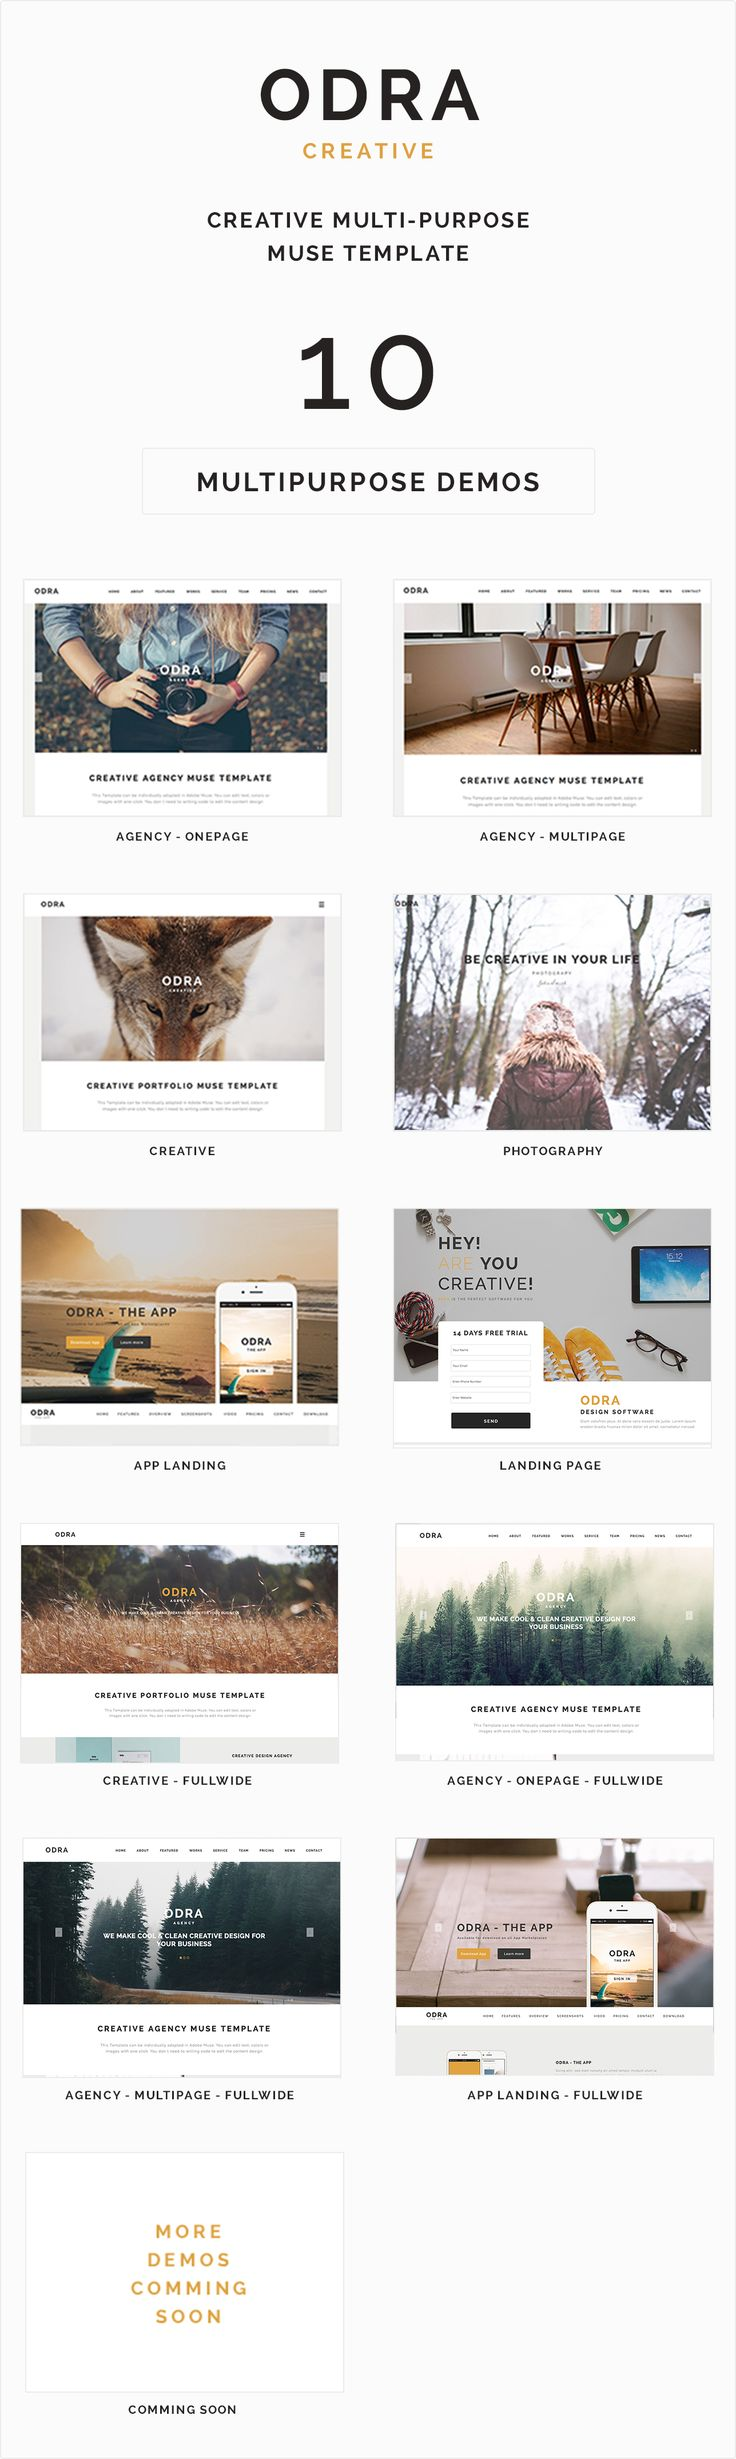 The 24 best Muse Template images on Pinterest | Adobe muse, Website ...